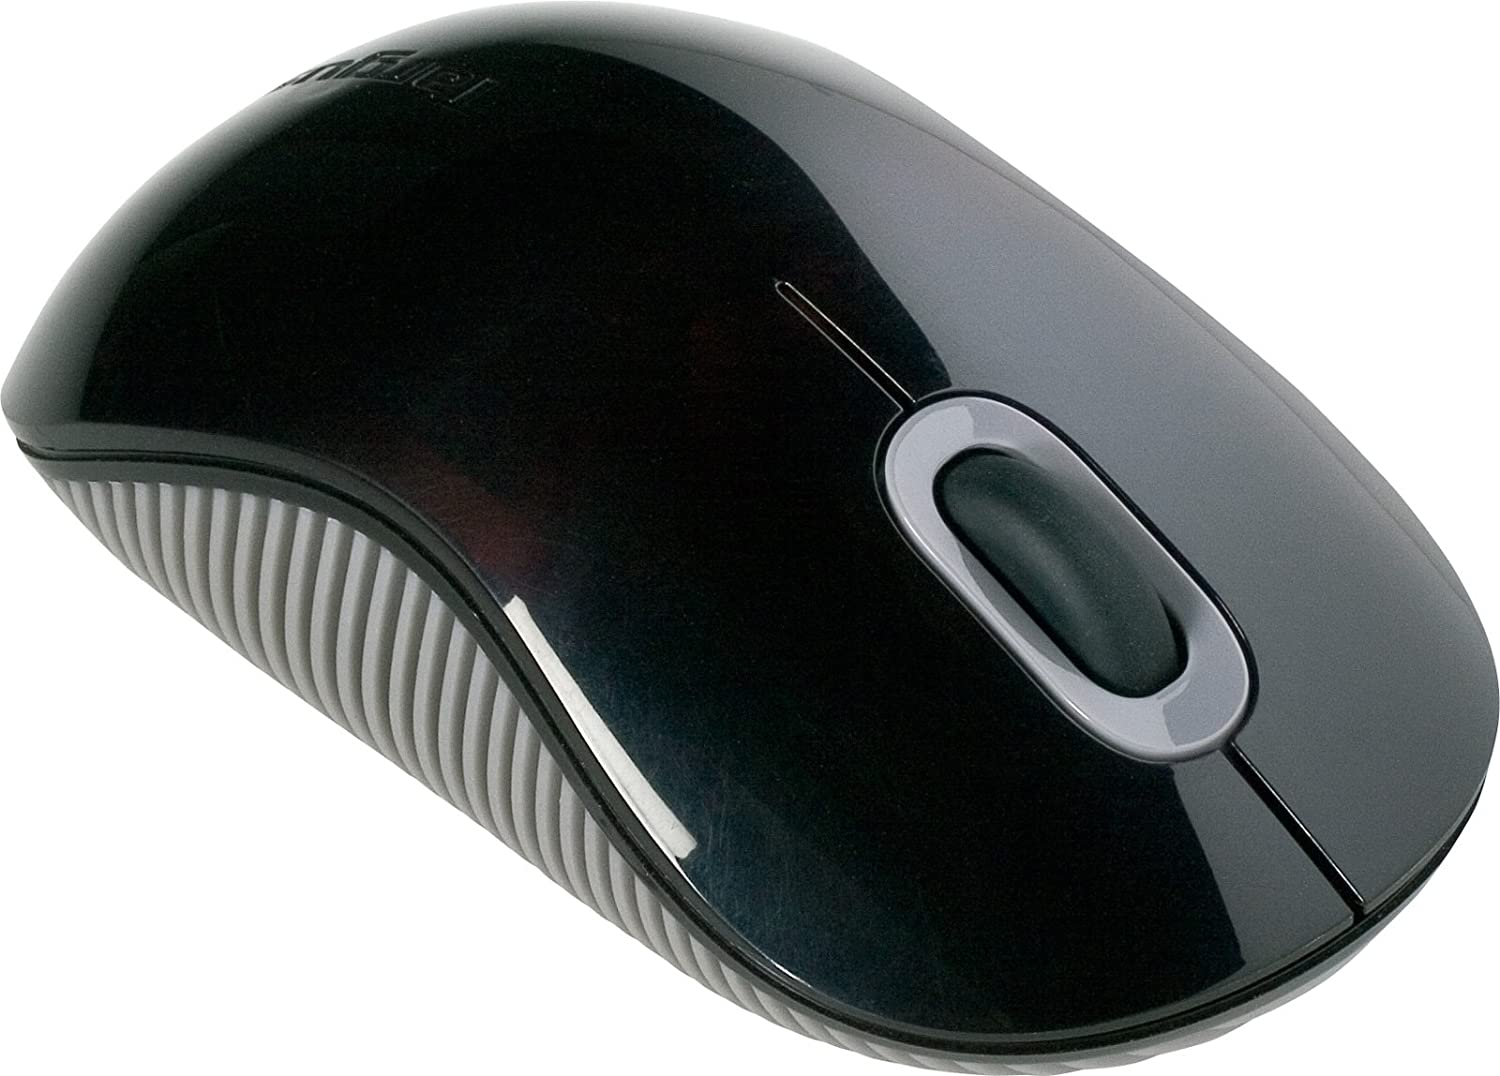 b96283a606e Amazon.in: Buy Targus Bluetooth Comfort Laser Mouse AMB09US (Black with  Gray) Online at Low Prices in India | Reviews & Ratings